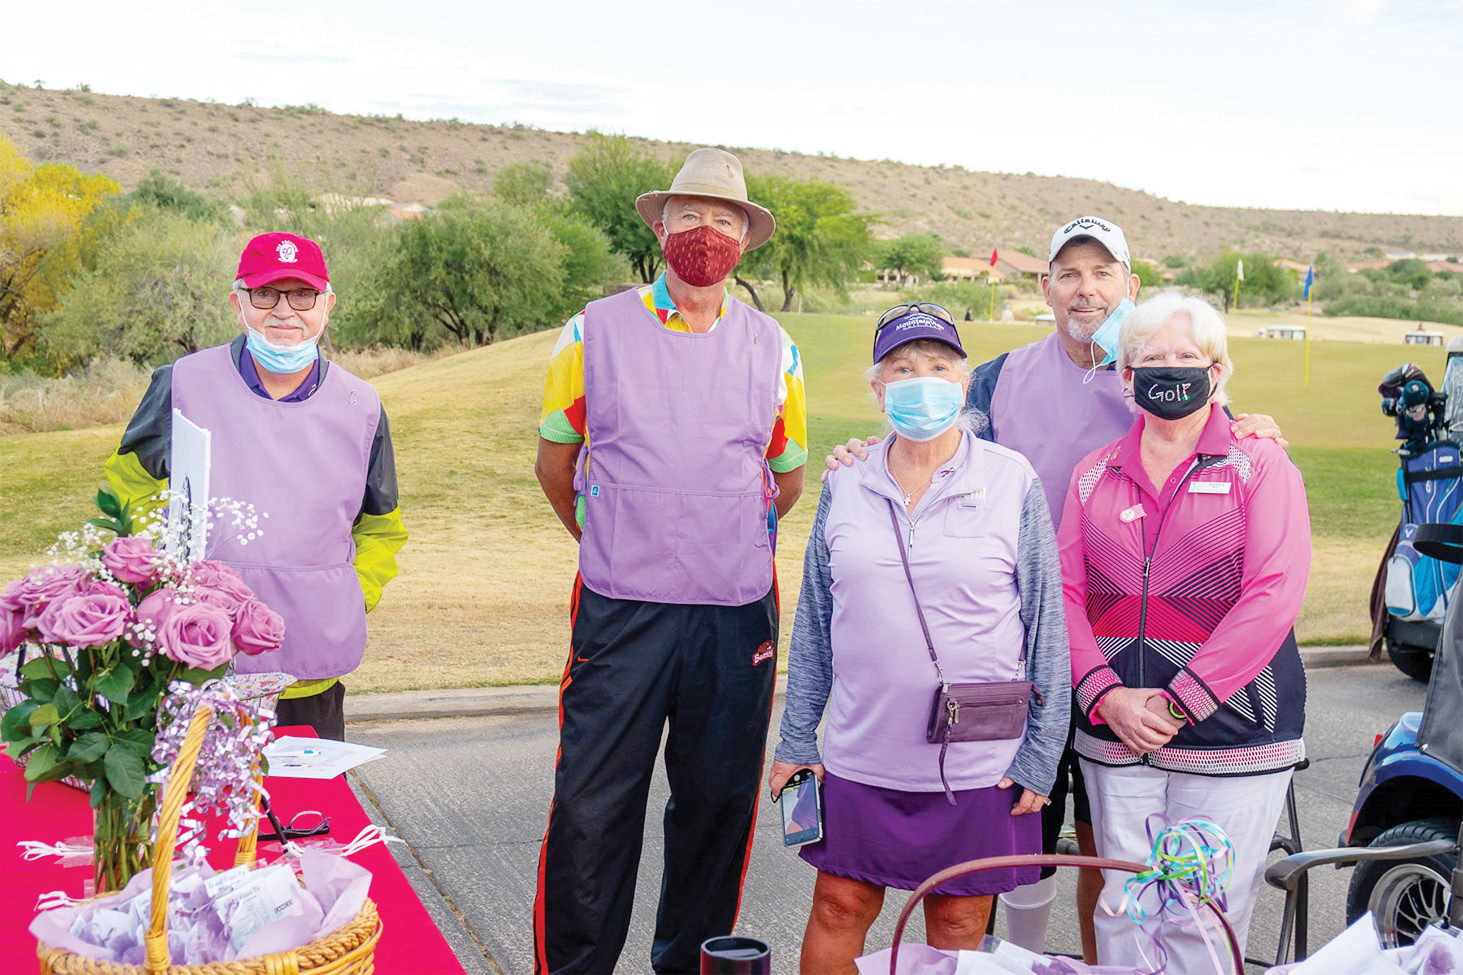 Larry McNamee, admiring the check-in table and gift bags prepared by wife, Loralee; Dan Nordhill; Event Chair, Loralee Horwedel; Matt Kambic; and Barbara Bloch, dressed in plum to honor cancer caregivers. (Photo by Bill George)